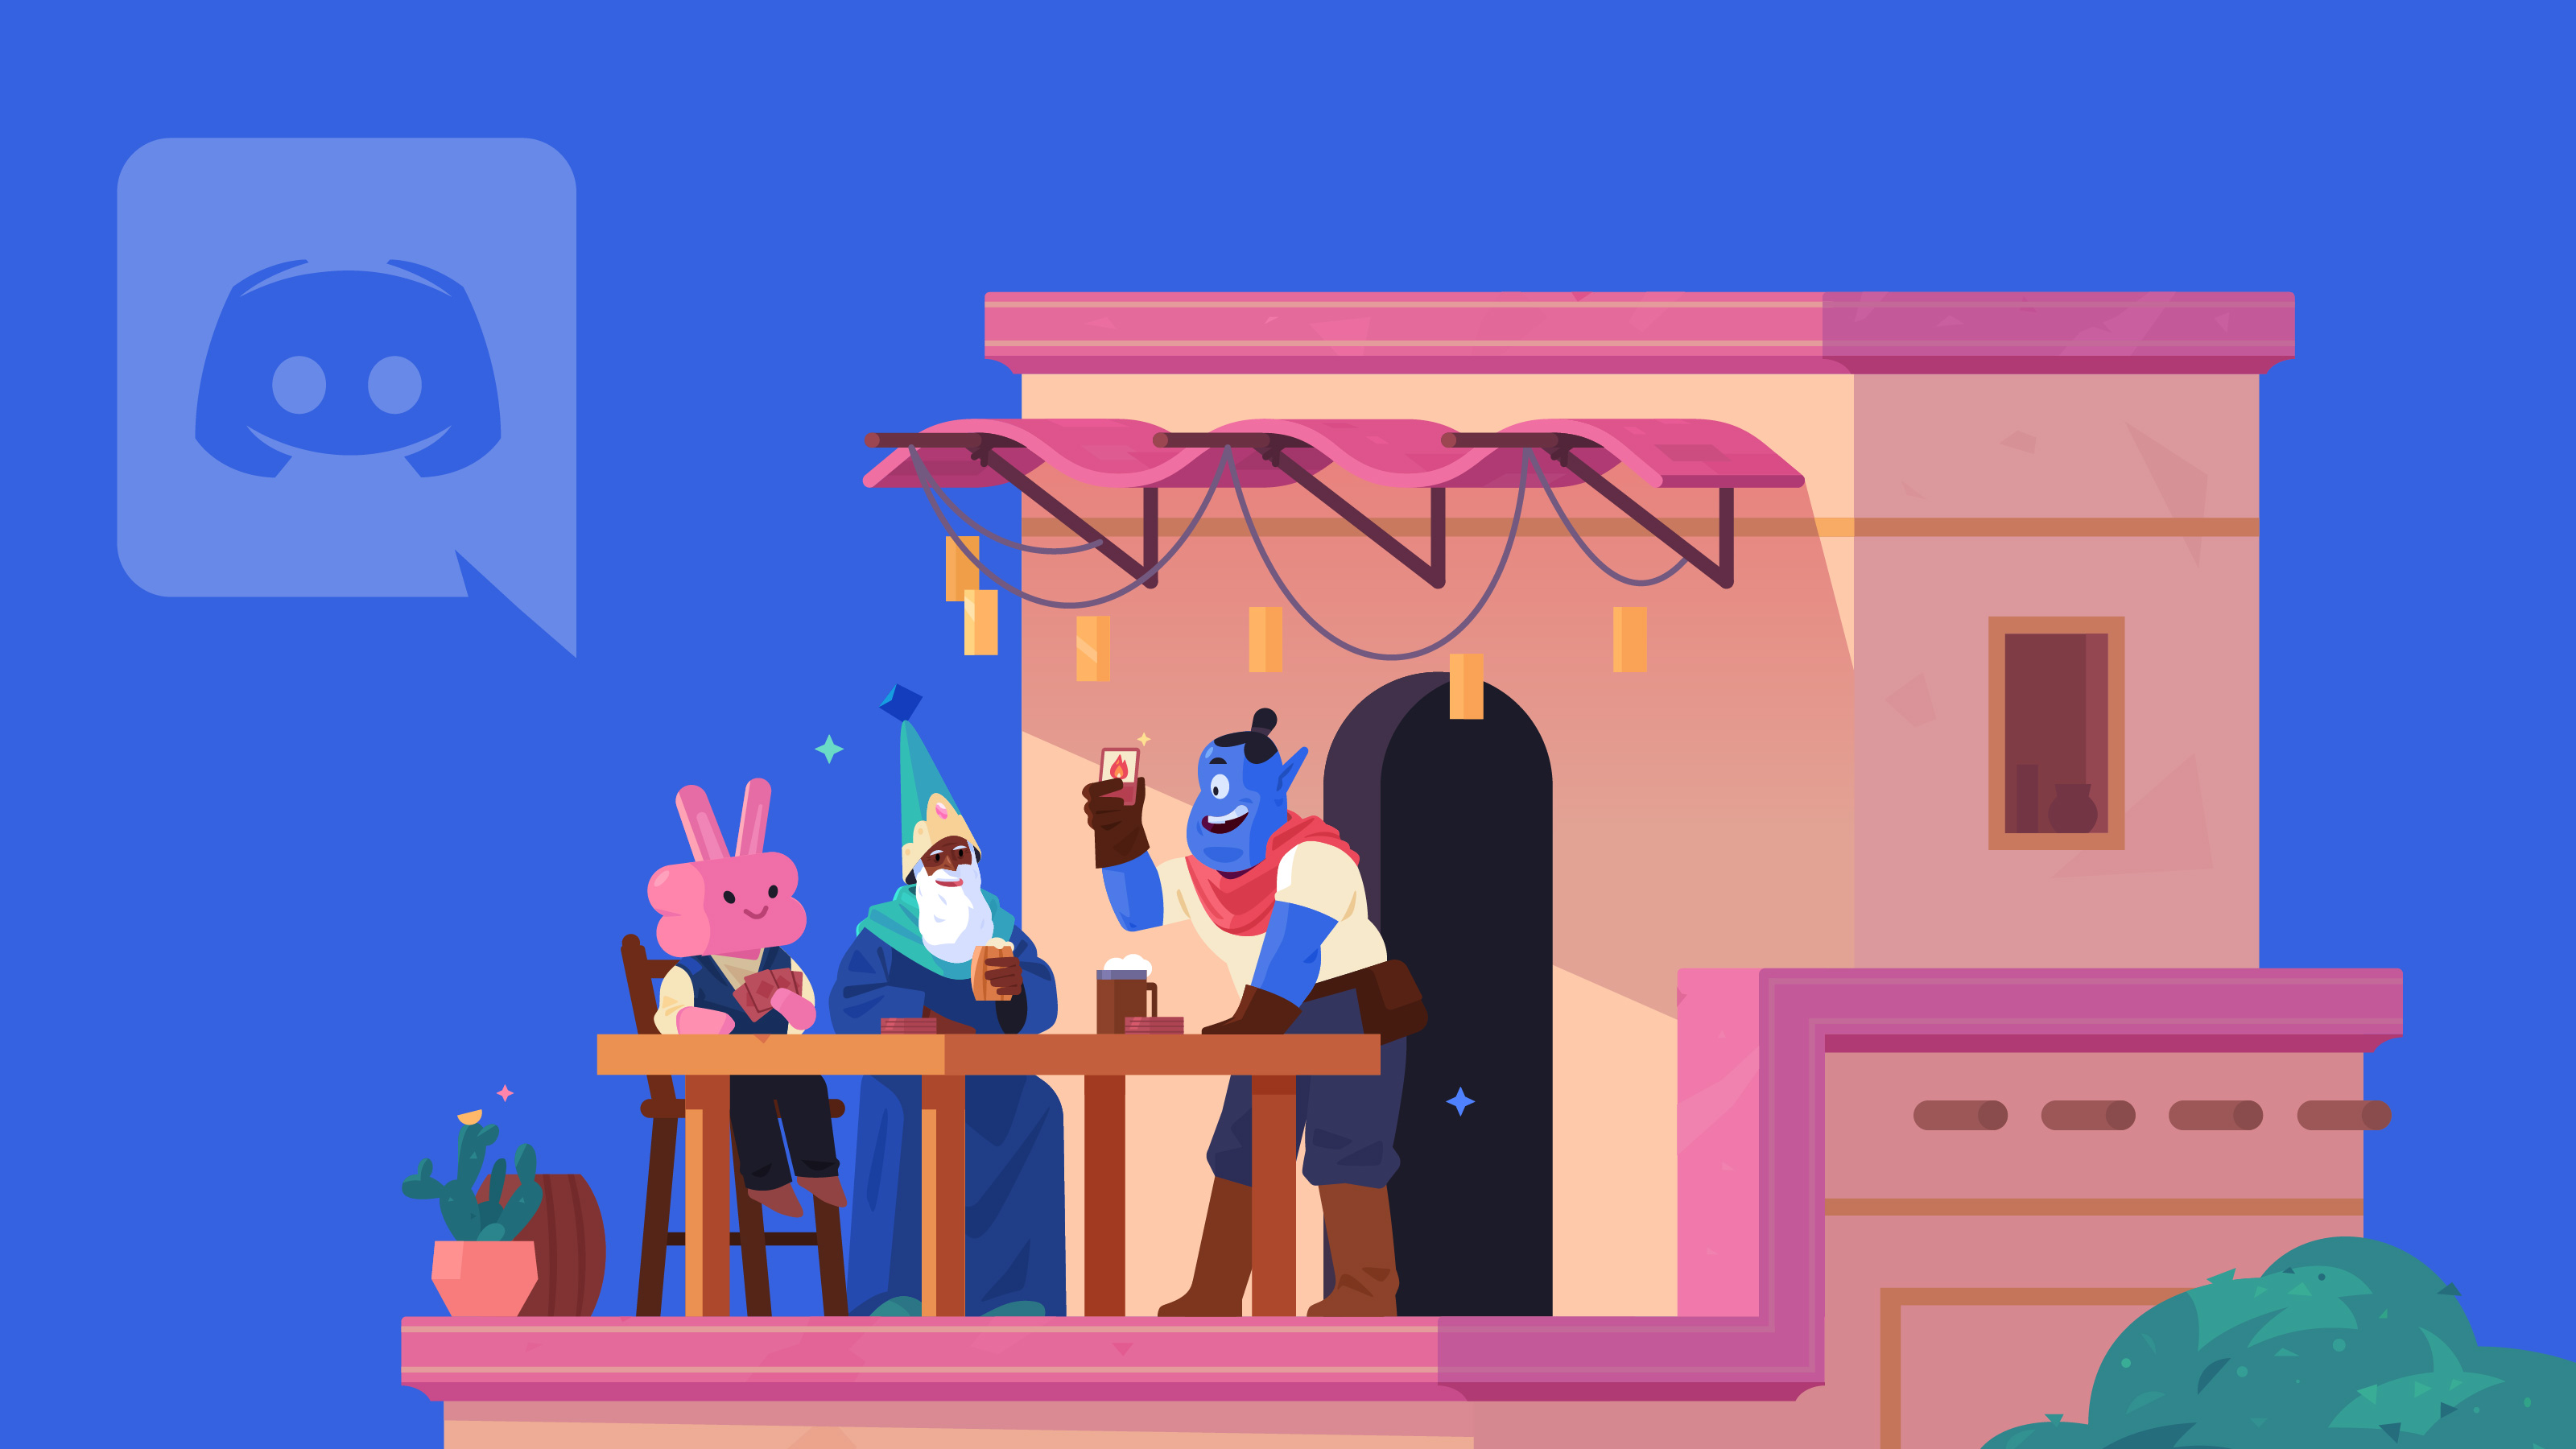 discord illustration